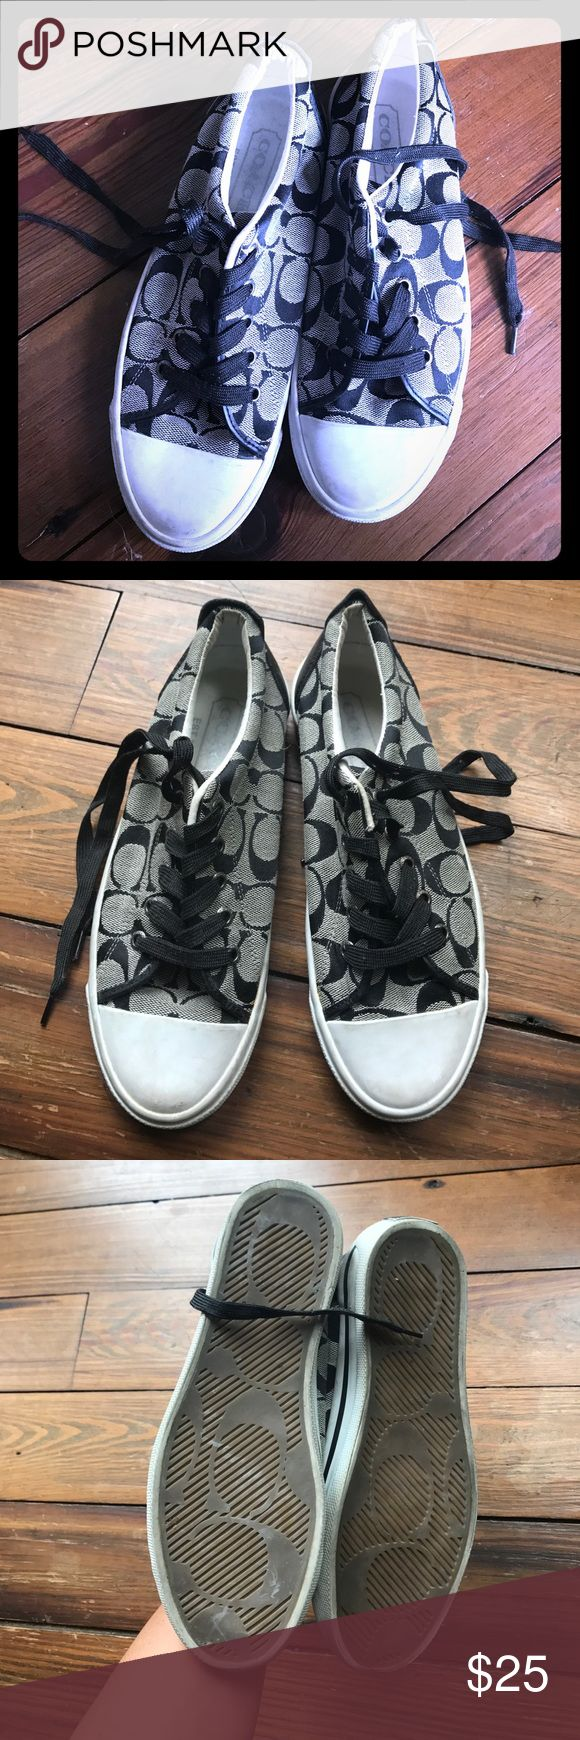 Size 8-1/2 Coach tennis shoes Used but good condition, size 8-1/2 coach tennis shoes Coach Shoes Sneakers